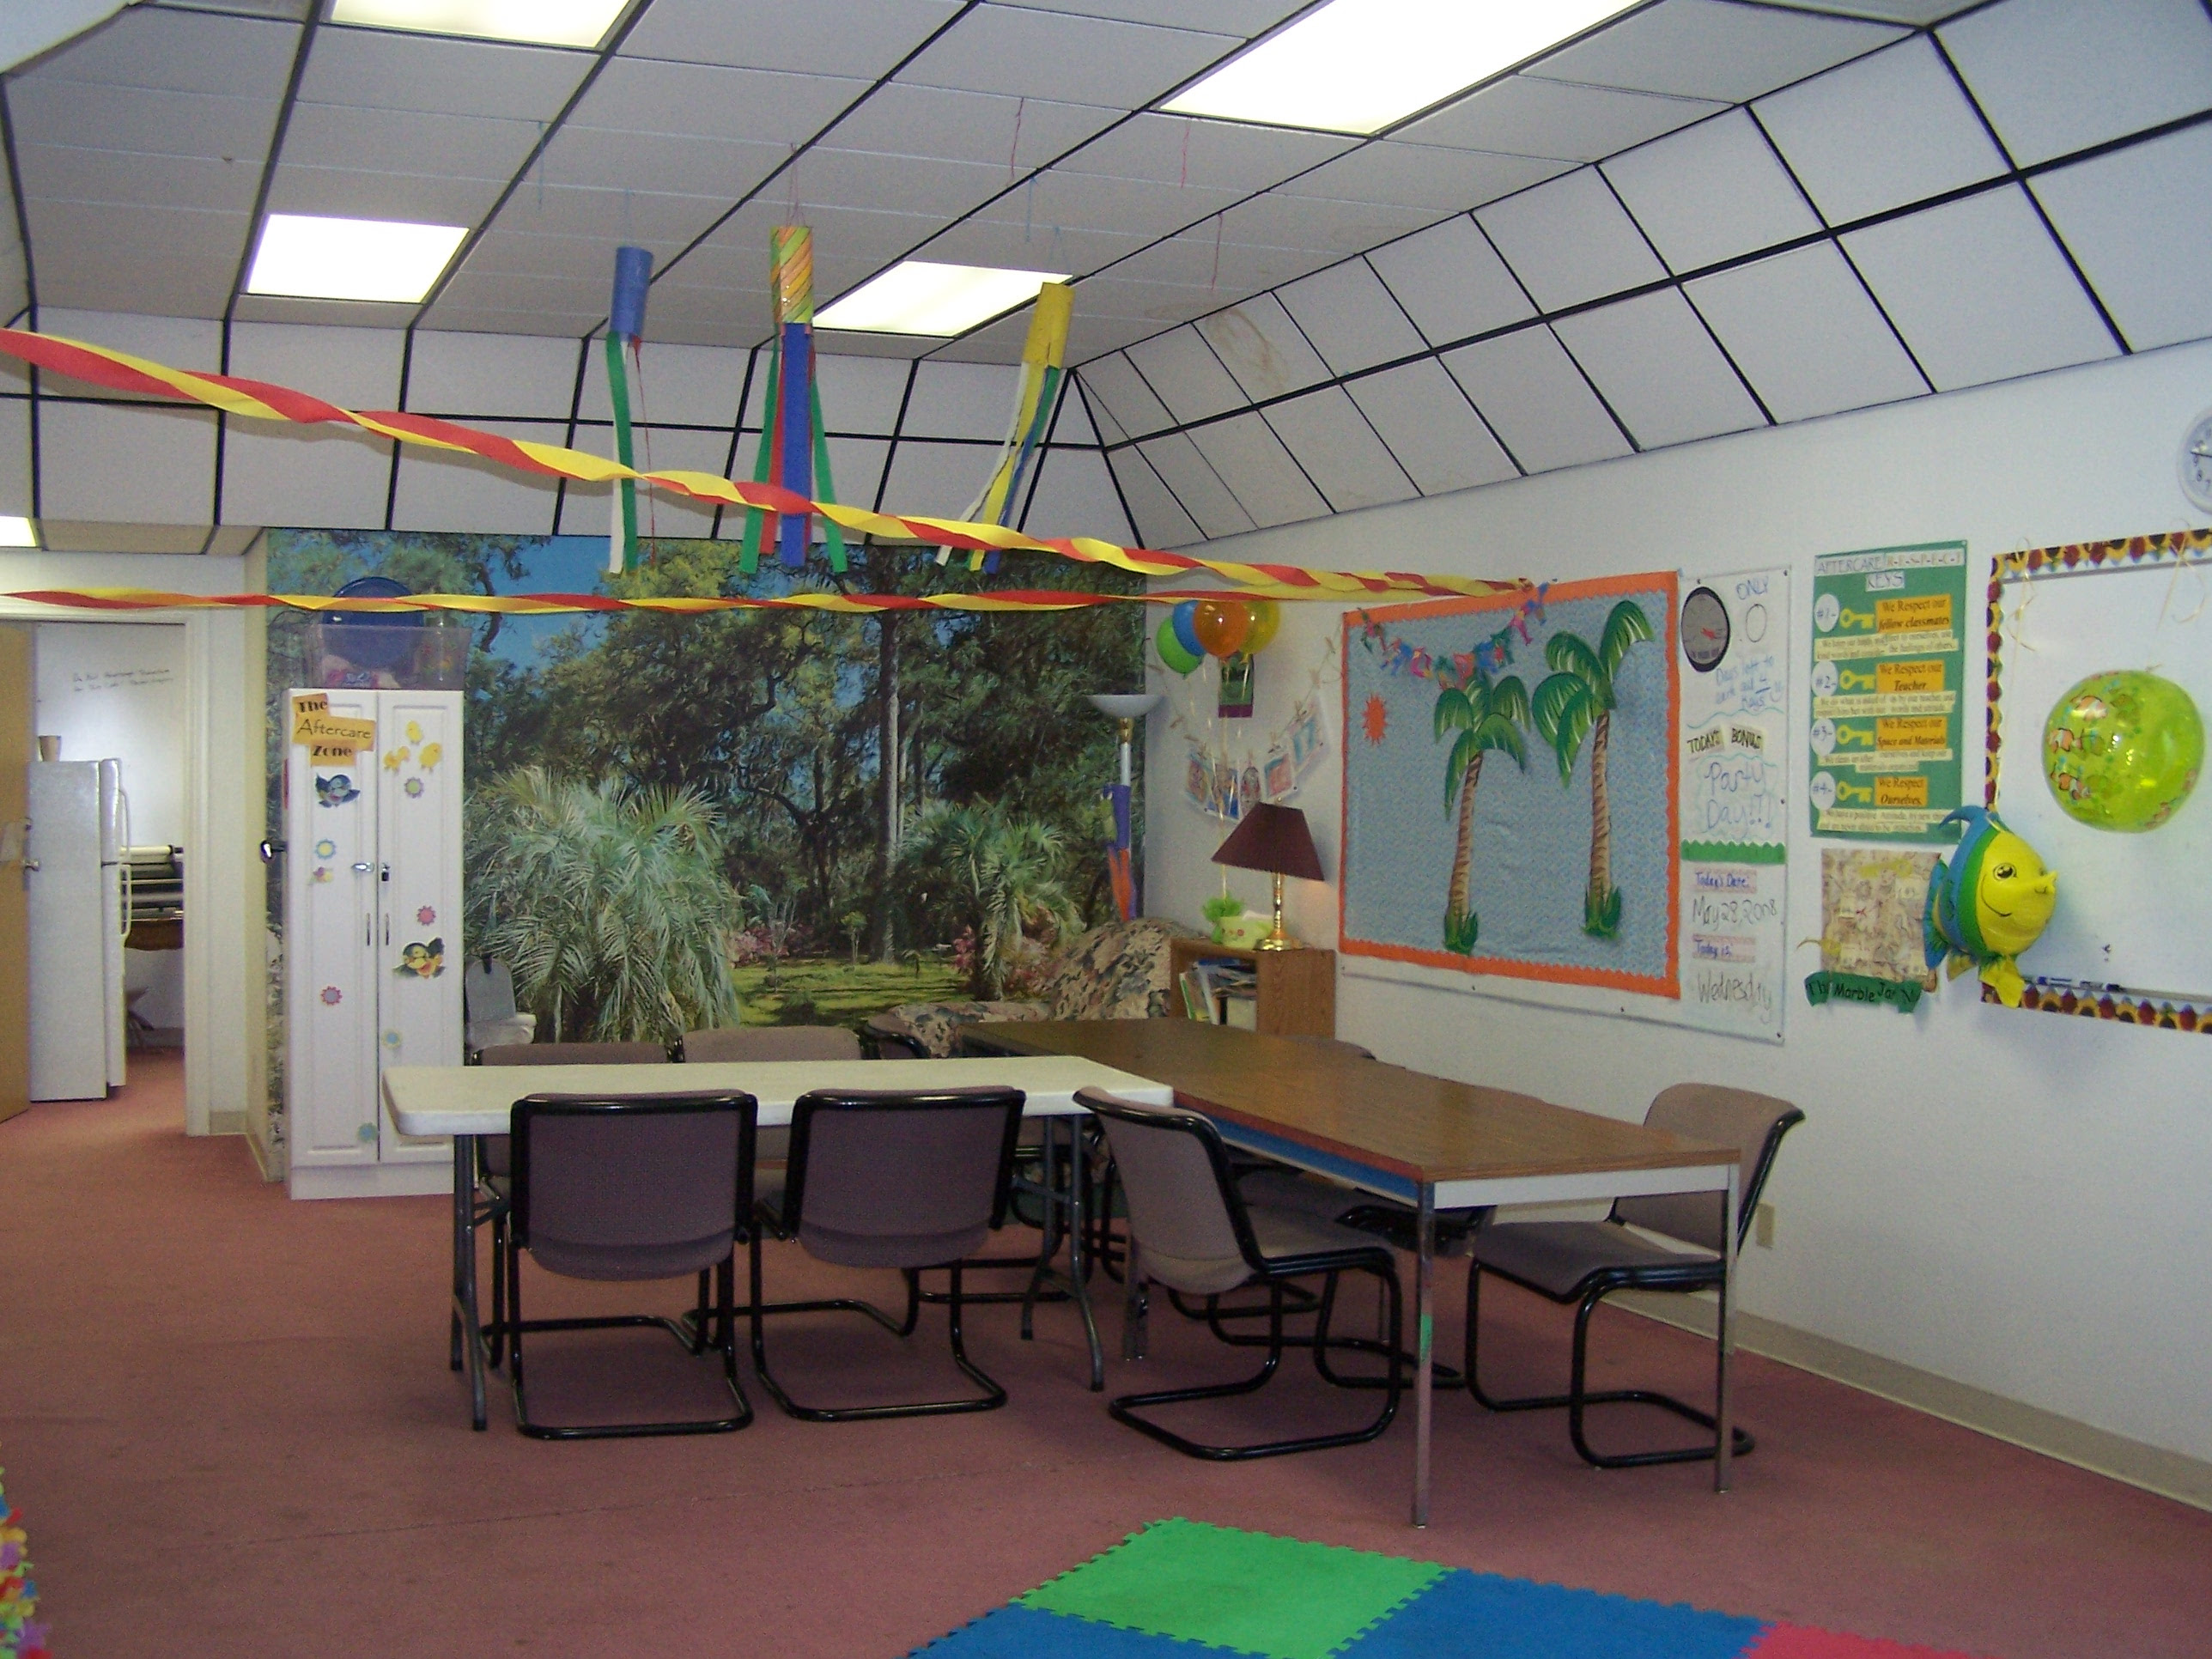 Ideas In Classroom ~ Classroom decorating ideas dream house experience